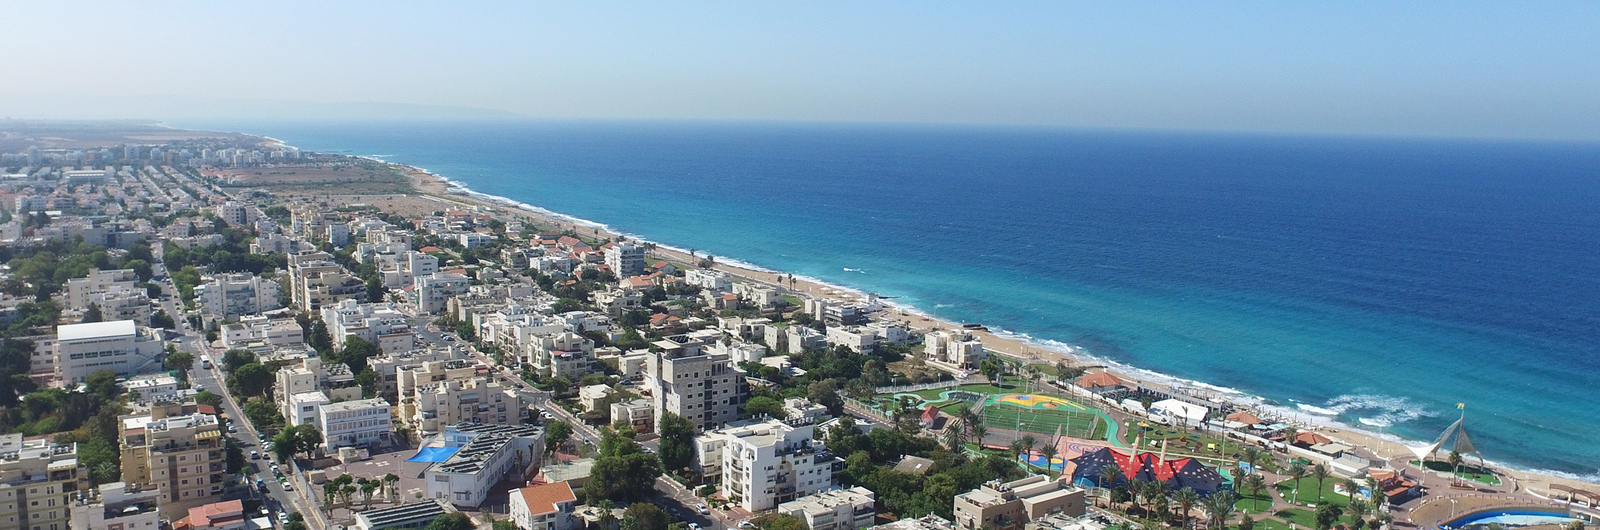 nahariya city header